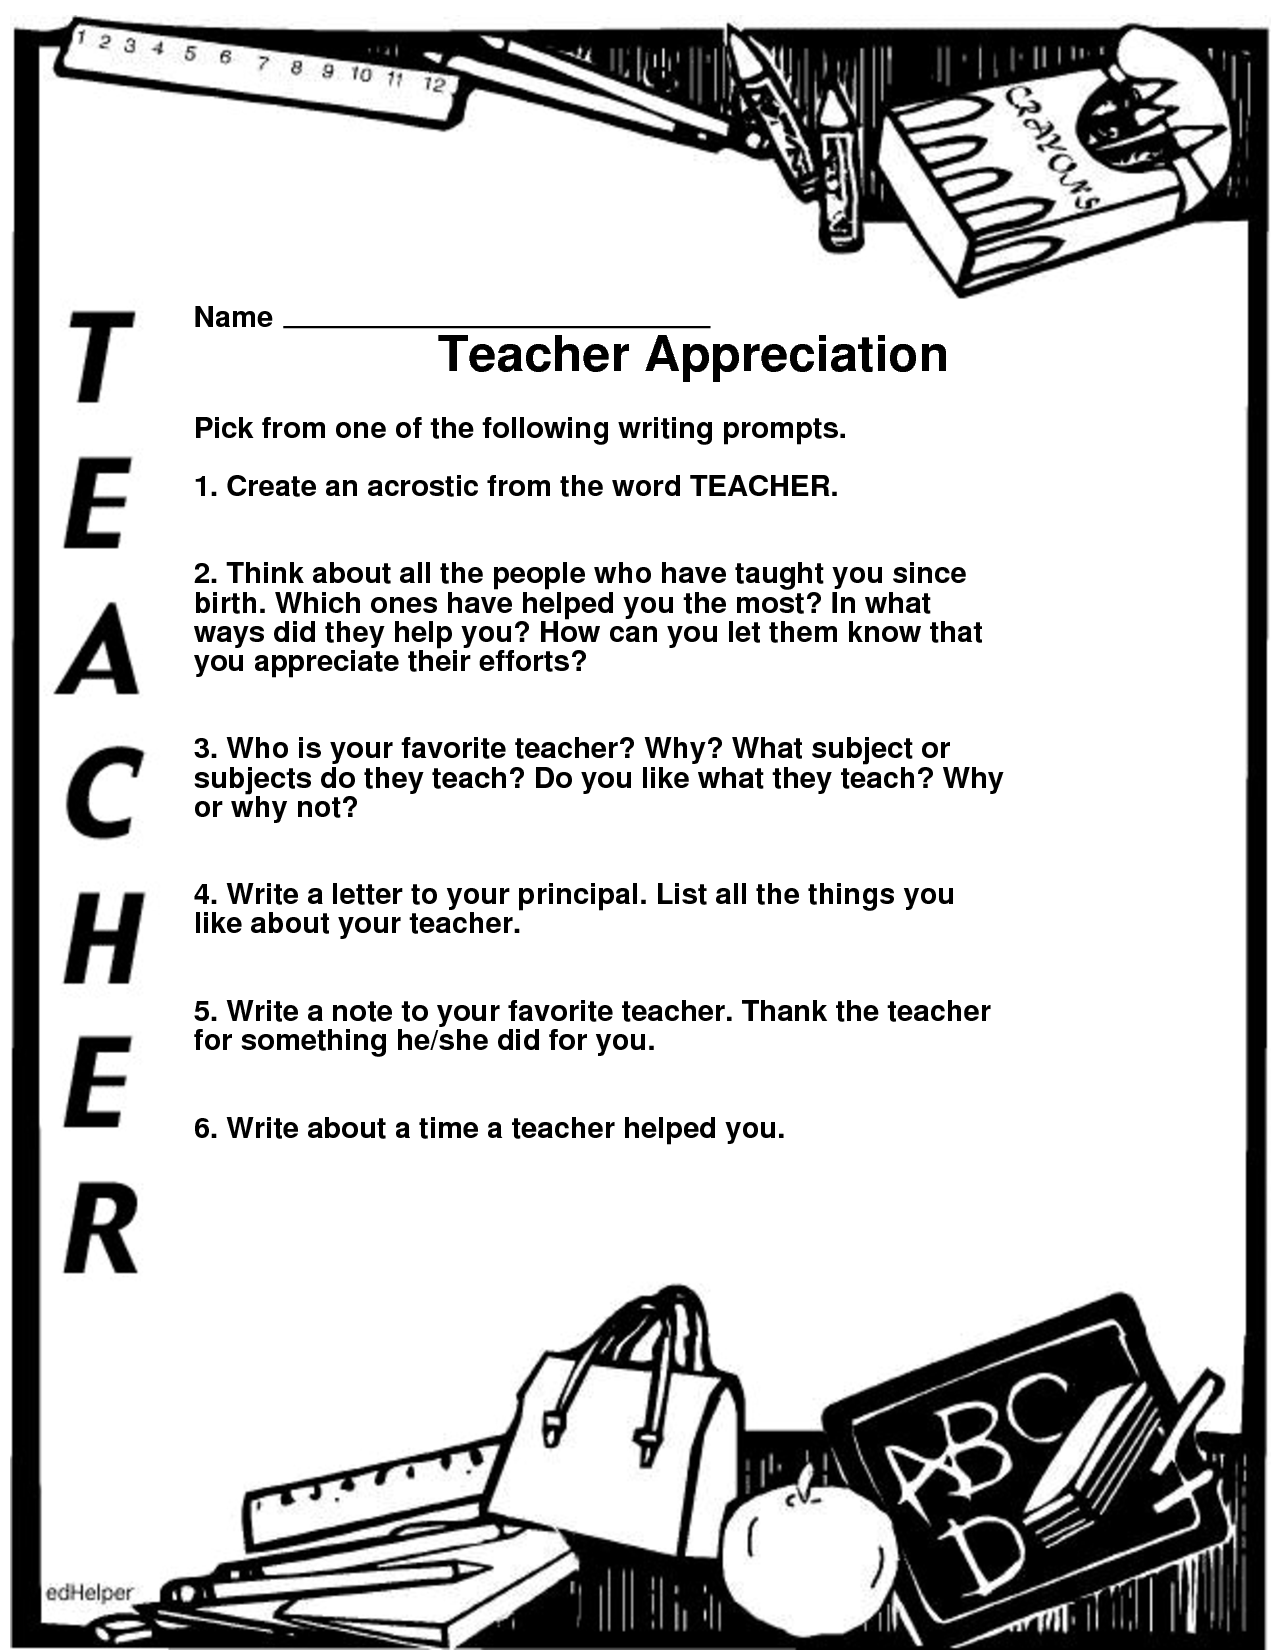 6797aa8b17e6d79e8f0dae550e923f24 Teacher Appreciation Letter Th Grade Template on sign up sheet, superhero theme word, luncheon flyer, student note, luncheon invitation, letter 4th grade, weekly schedule, 2nd grade, note card, for notes, night invite,